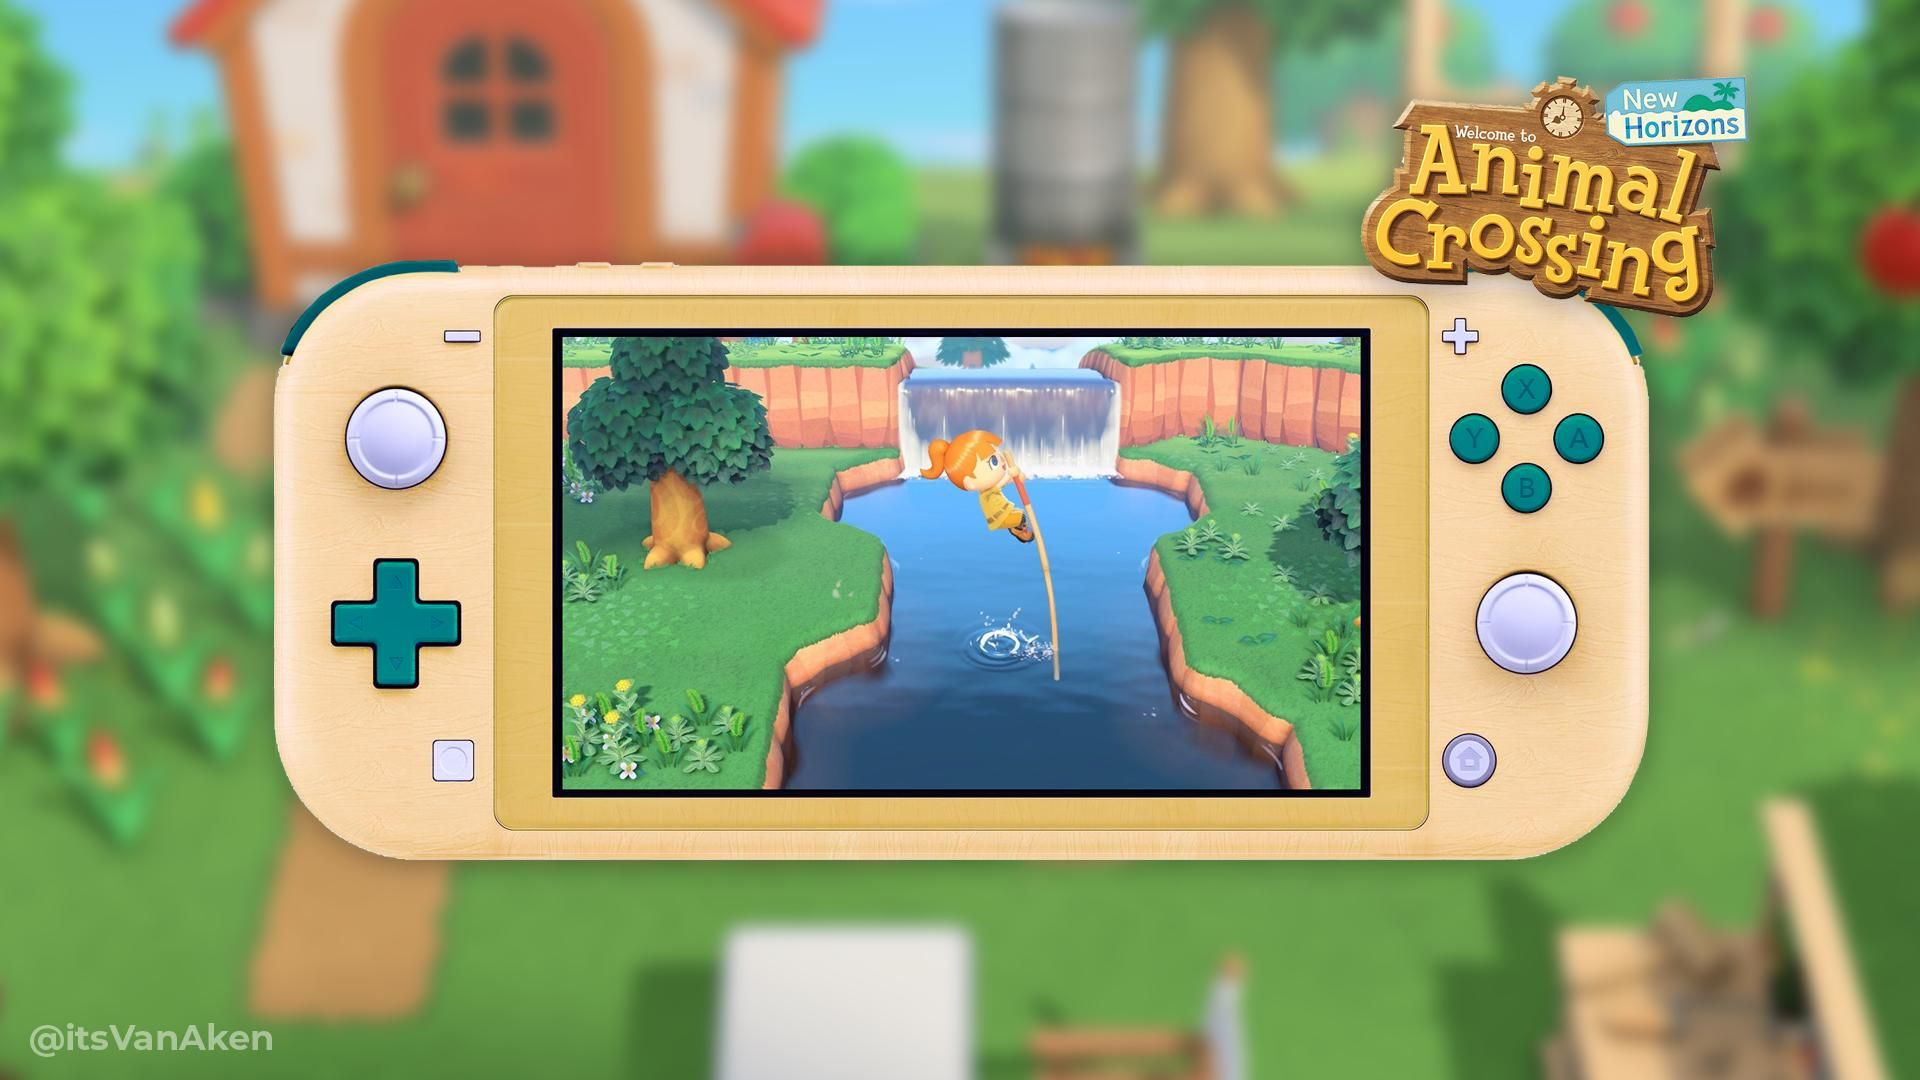 10+ Animal crossing playstation 4 images